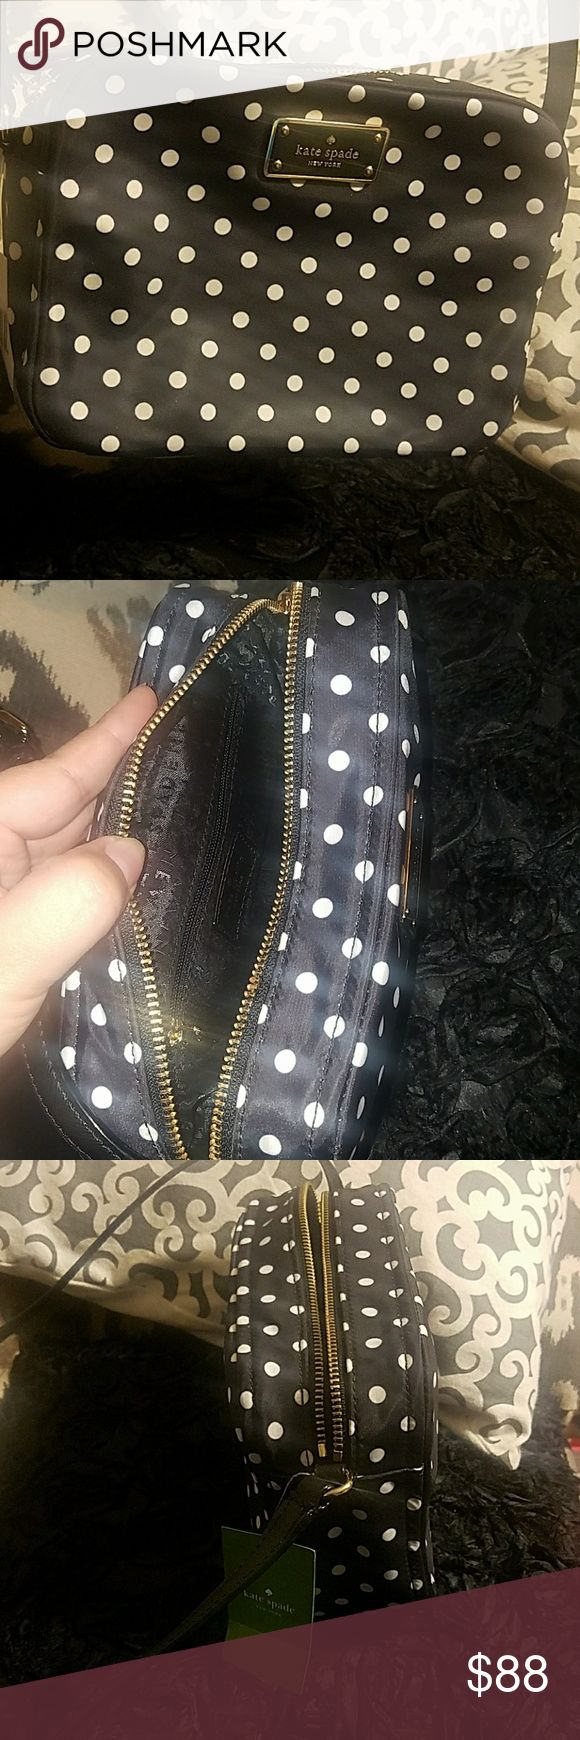 Kate Spade Crossbody Blake Avenue Bag 🖤Adorable pockadots cross body 🖤Great for going out  🖤Brand new with tags  🖤Priced to sell 🖤Material is Nylon  🖤Questions just ask :) I'll be glad to answer  🖤Hint add to a bundle for discounted shipping:) kate spade Bags Crossbody Bags